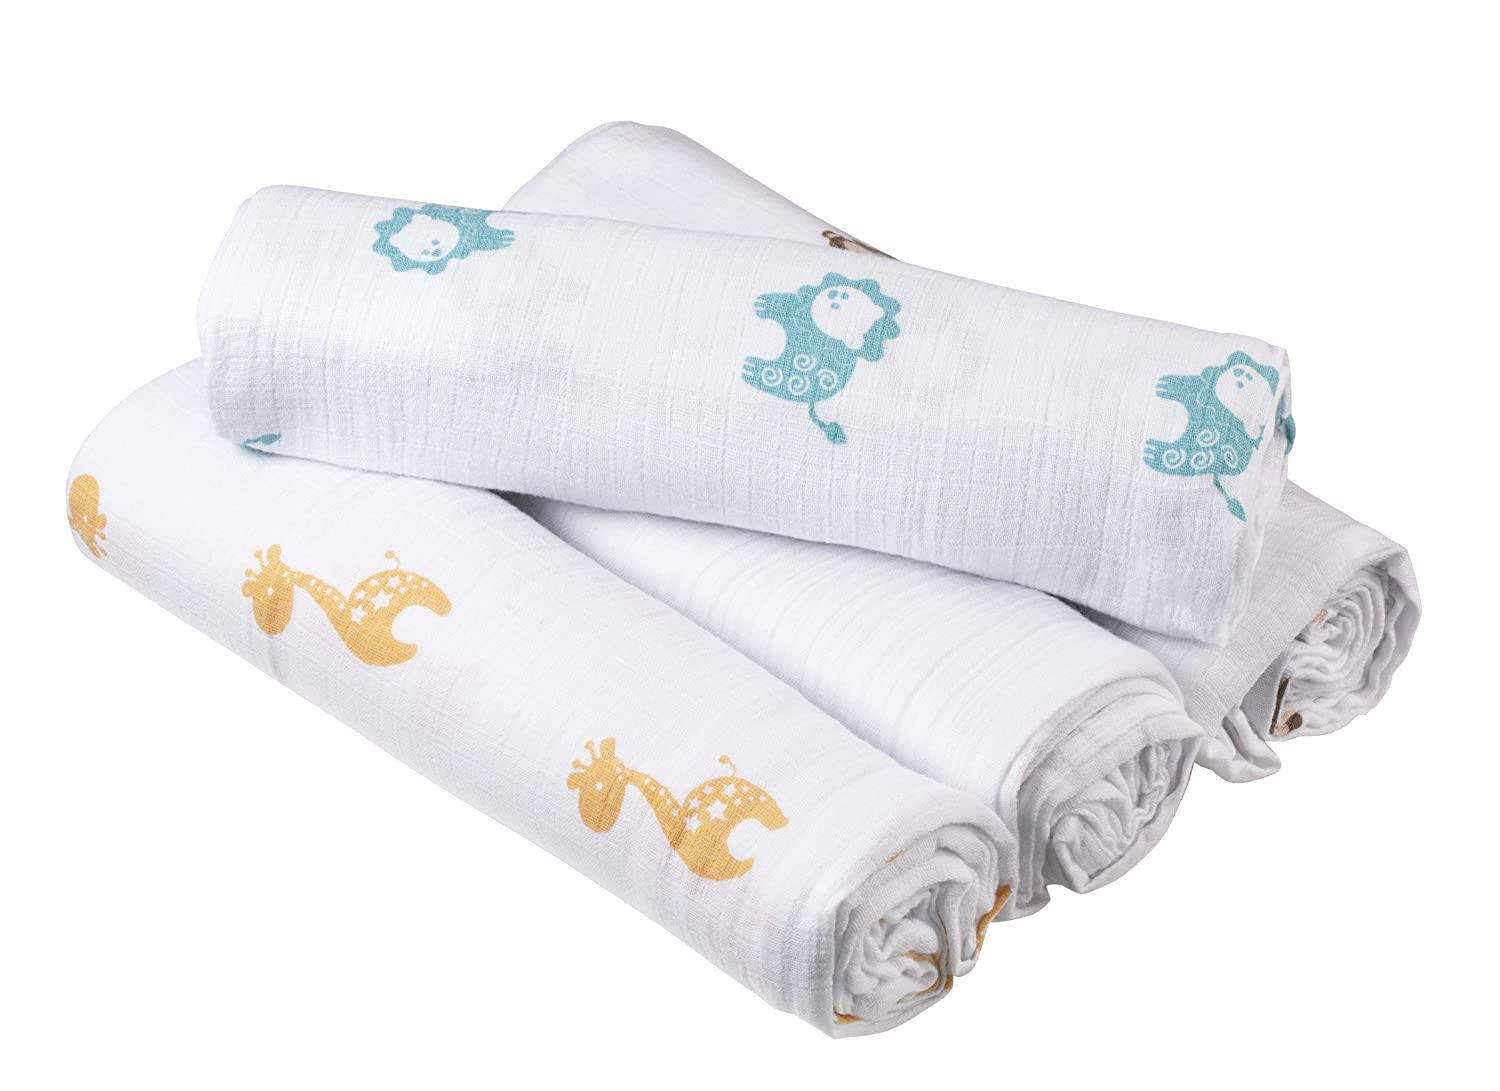 Aden By aden + anais Muslin Swaddle Blanket 4 Pack, Safari Friends